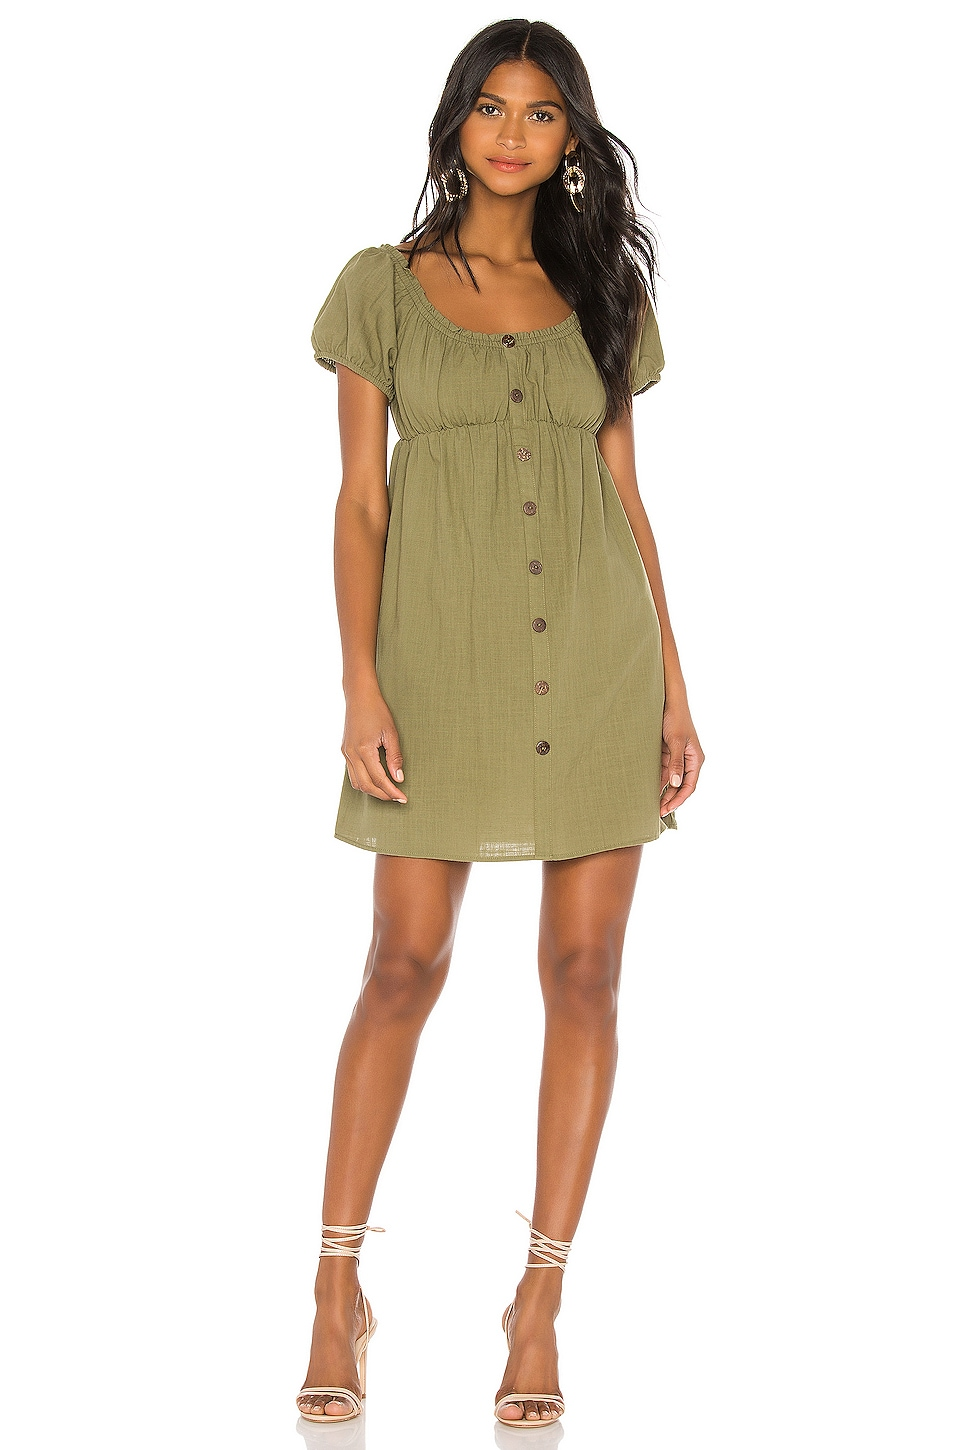 MINKPINK Linen Puff Mini Dress in Khaki